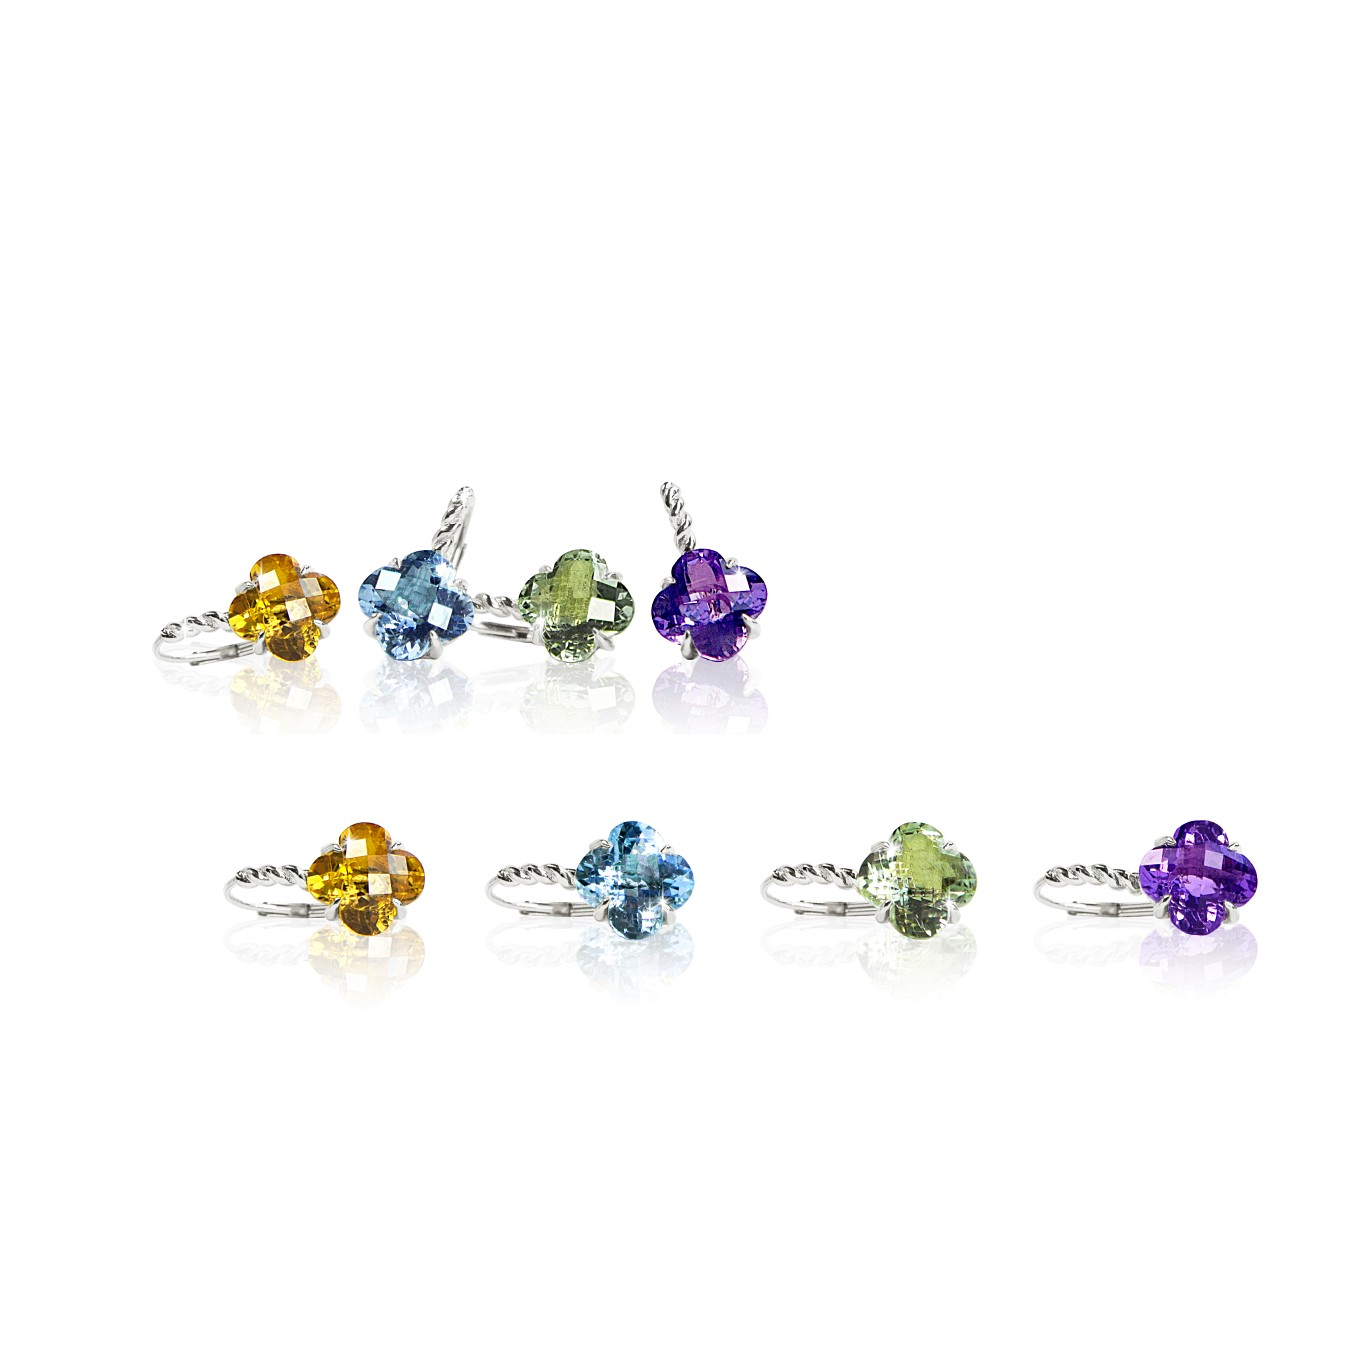 CITRINE, BLUE TOPAZ, GREEN AMETHYST, & AMETHYST CLOVER EARRINGS  IN STERLING SILVER